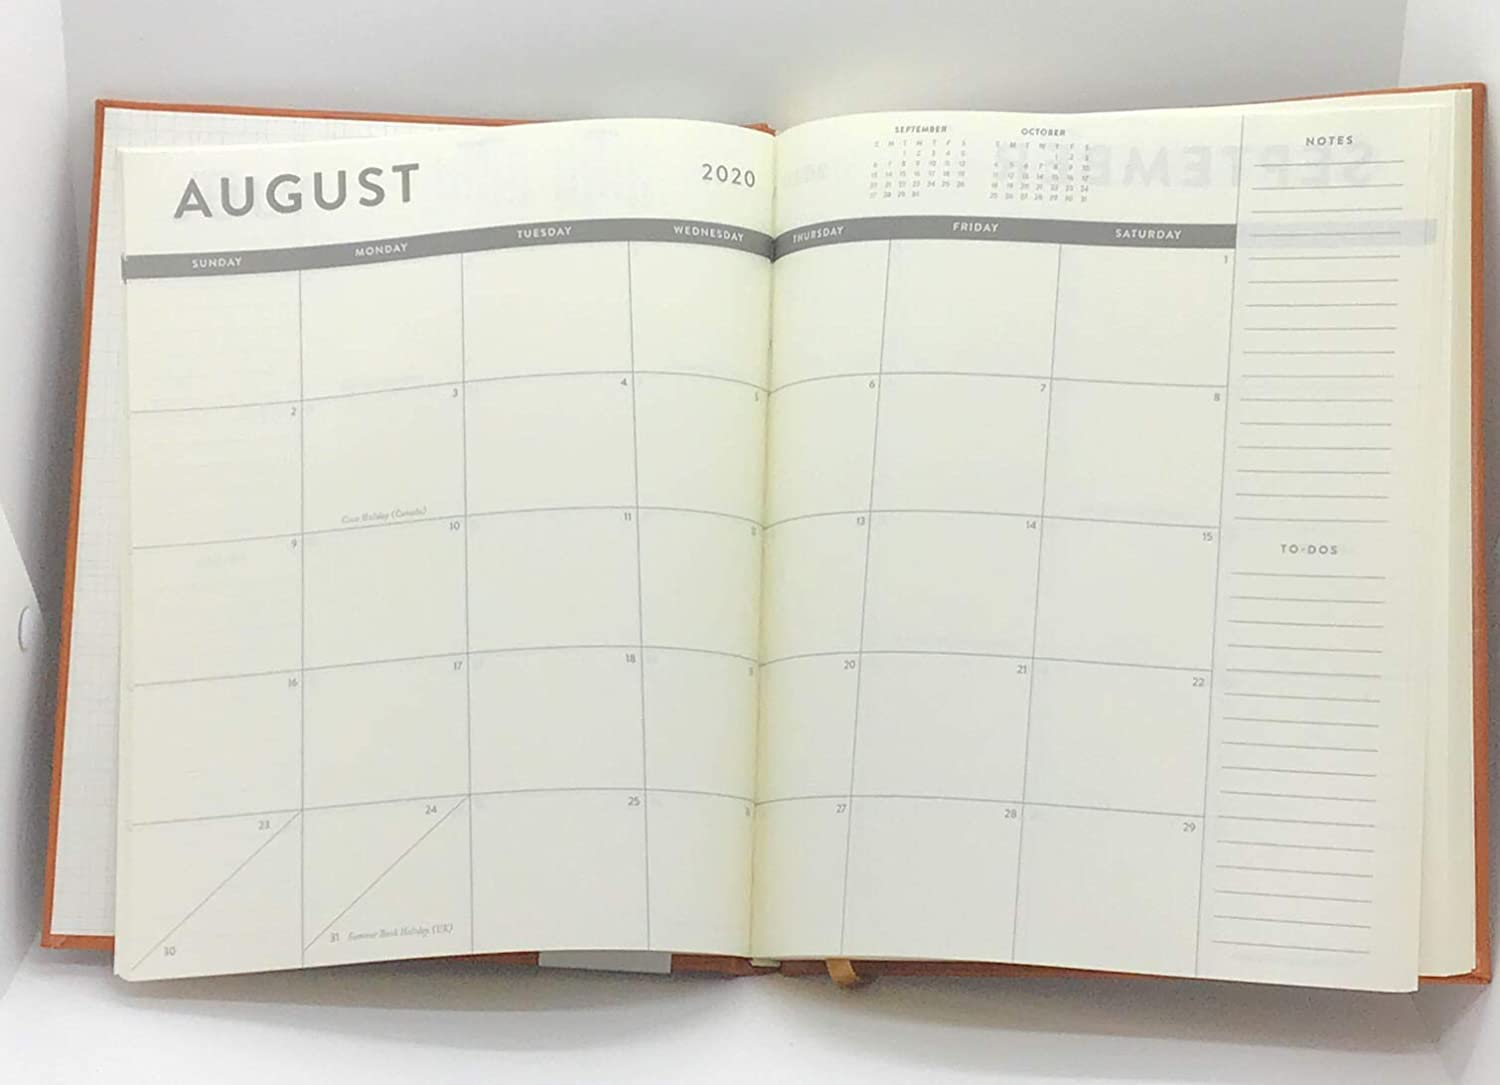 July 2019-December 2020 Eccolo Large Hardcover Agenda Planner, Monthly & Weekly Views, 8 x 10